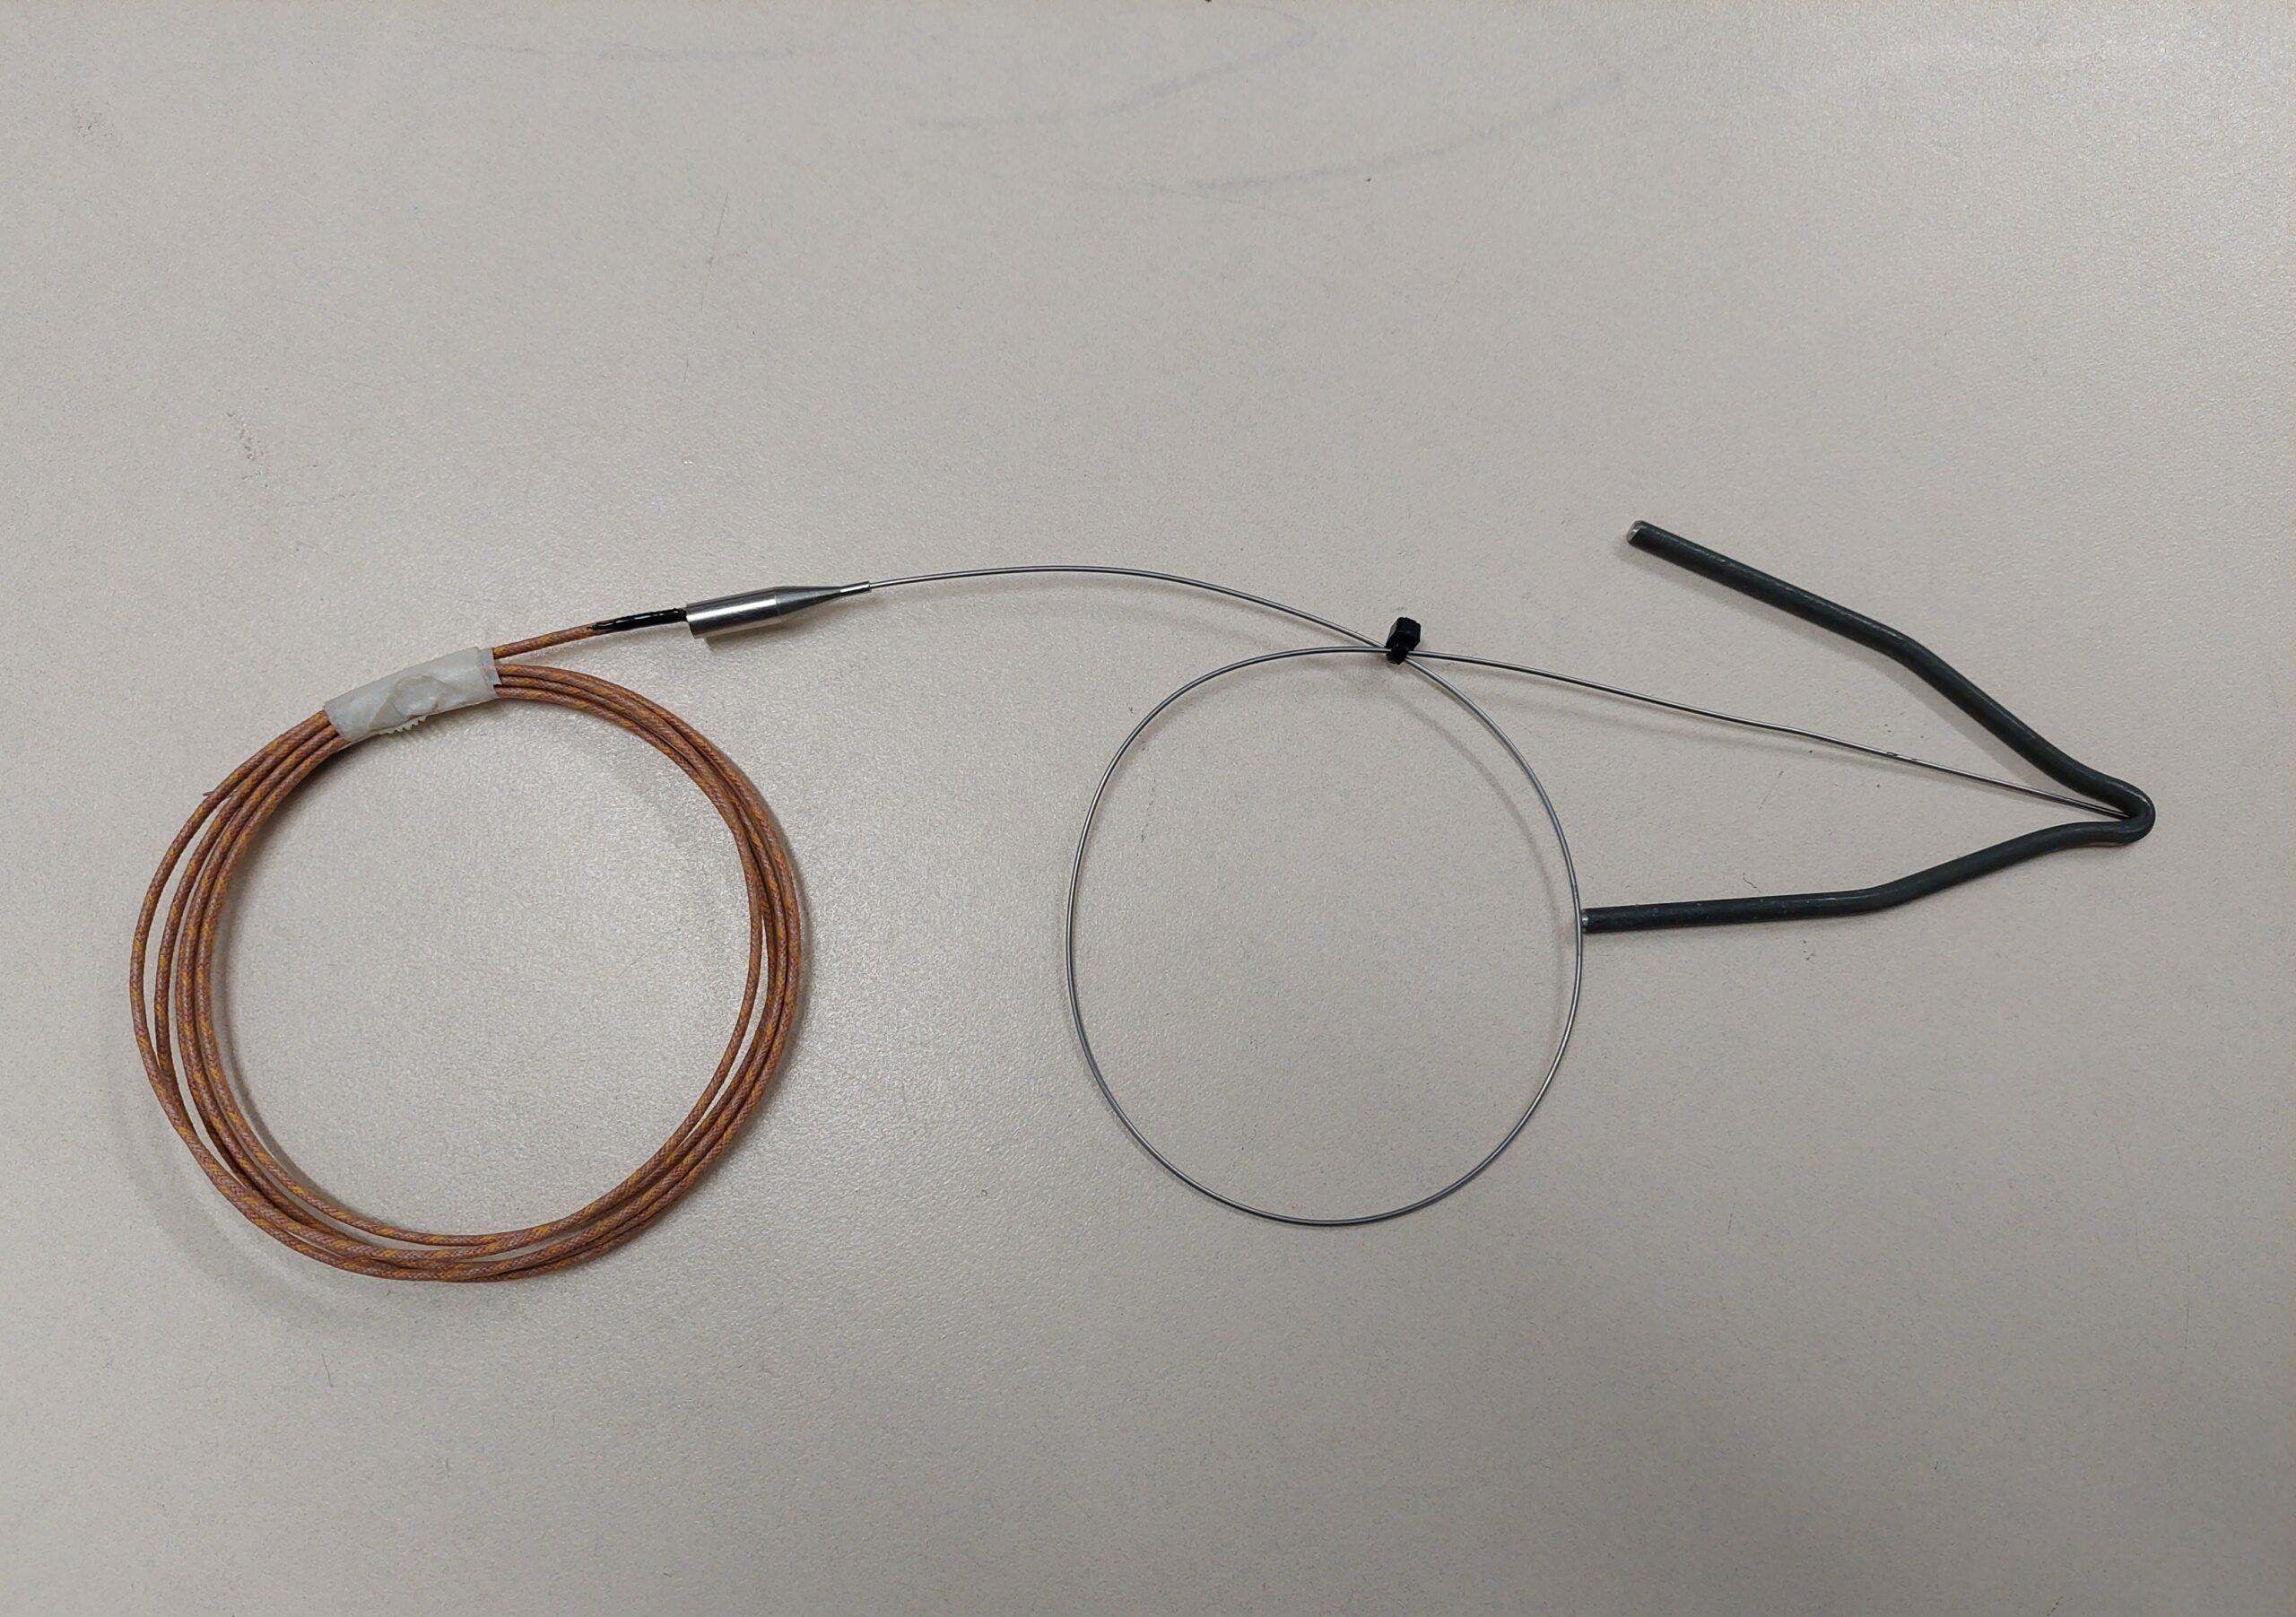 Glow WIre with thermocouple